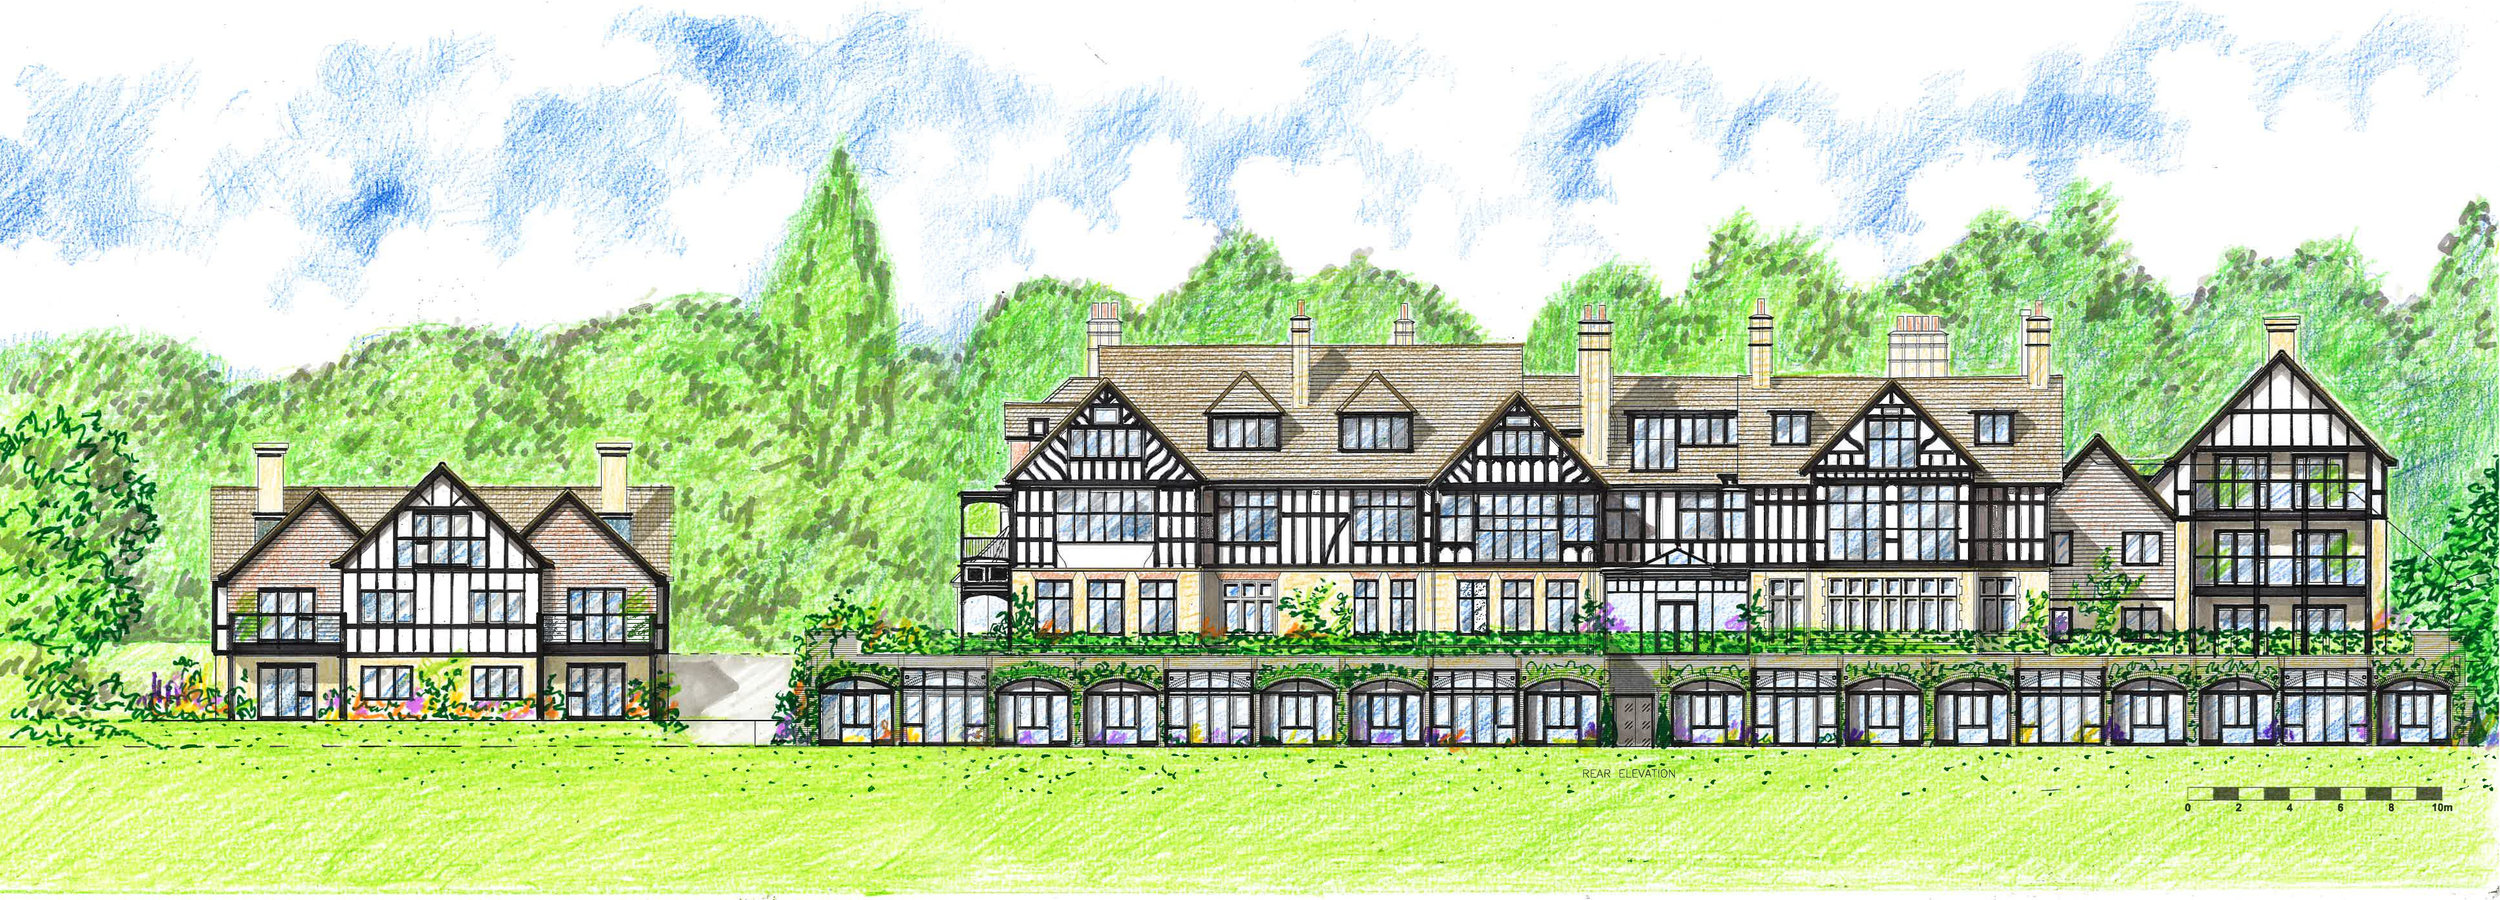 Godalming East Elevation.jpg